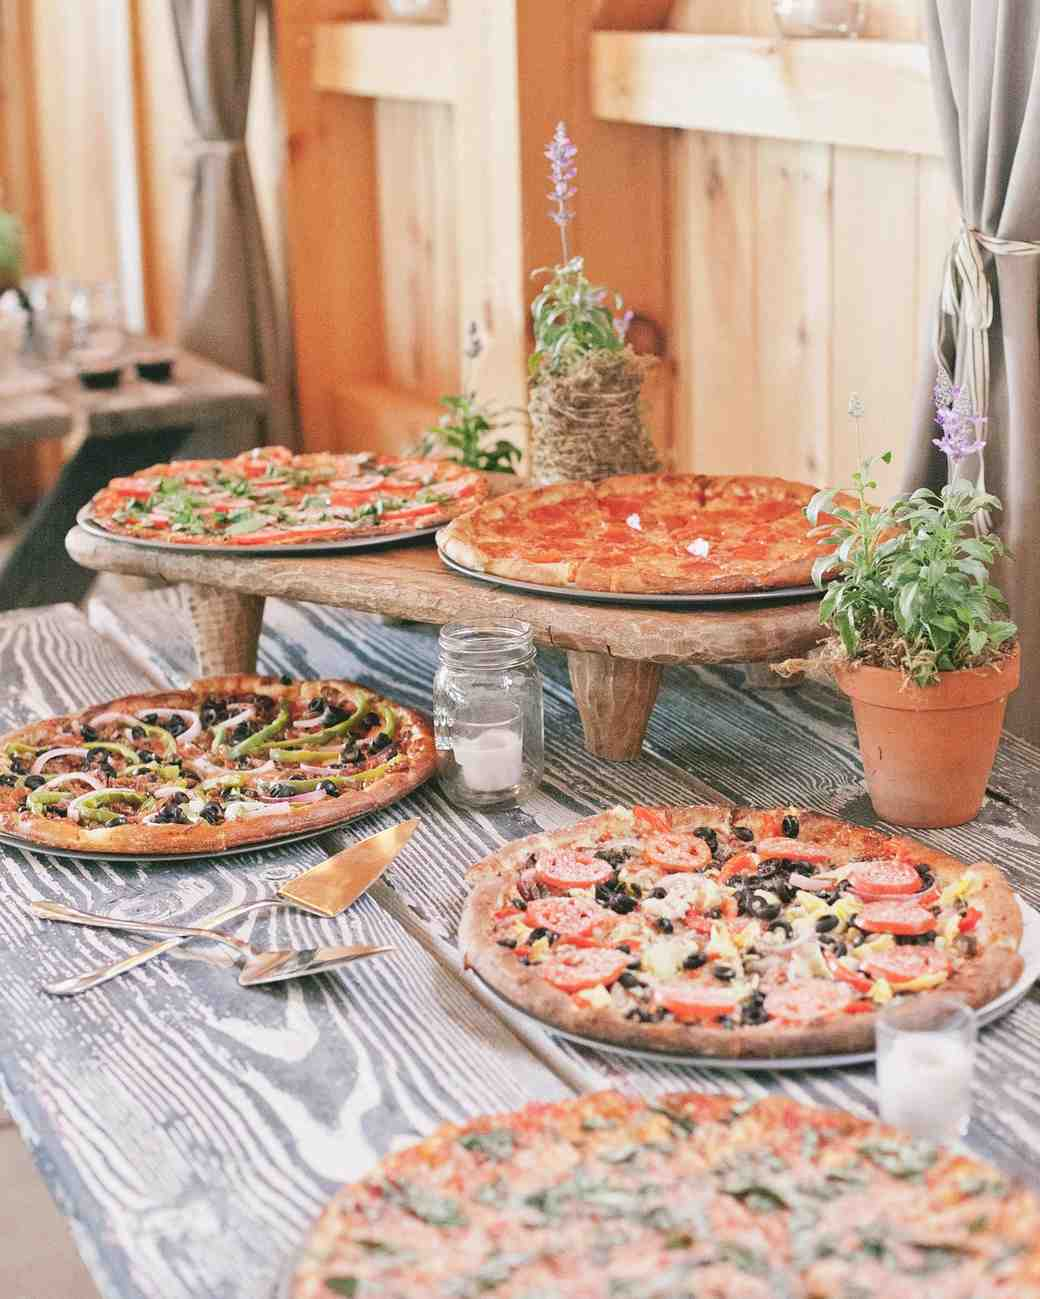 Wedding Reception Buffet Food Ideas: 25 Unexpected Wedding Food Ideas Your Guests Will Love